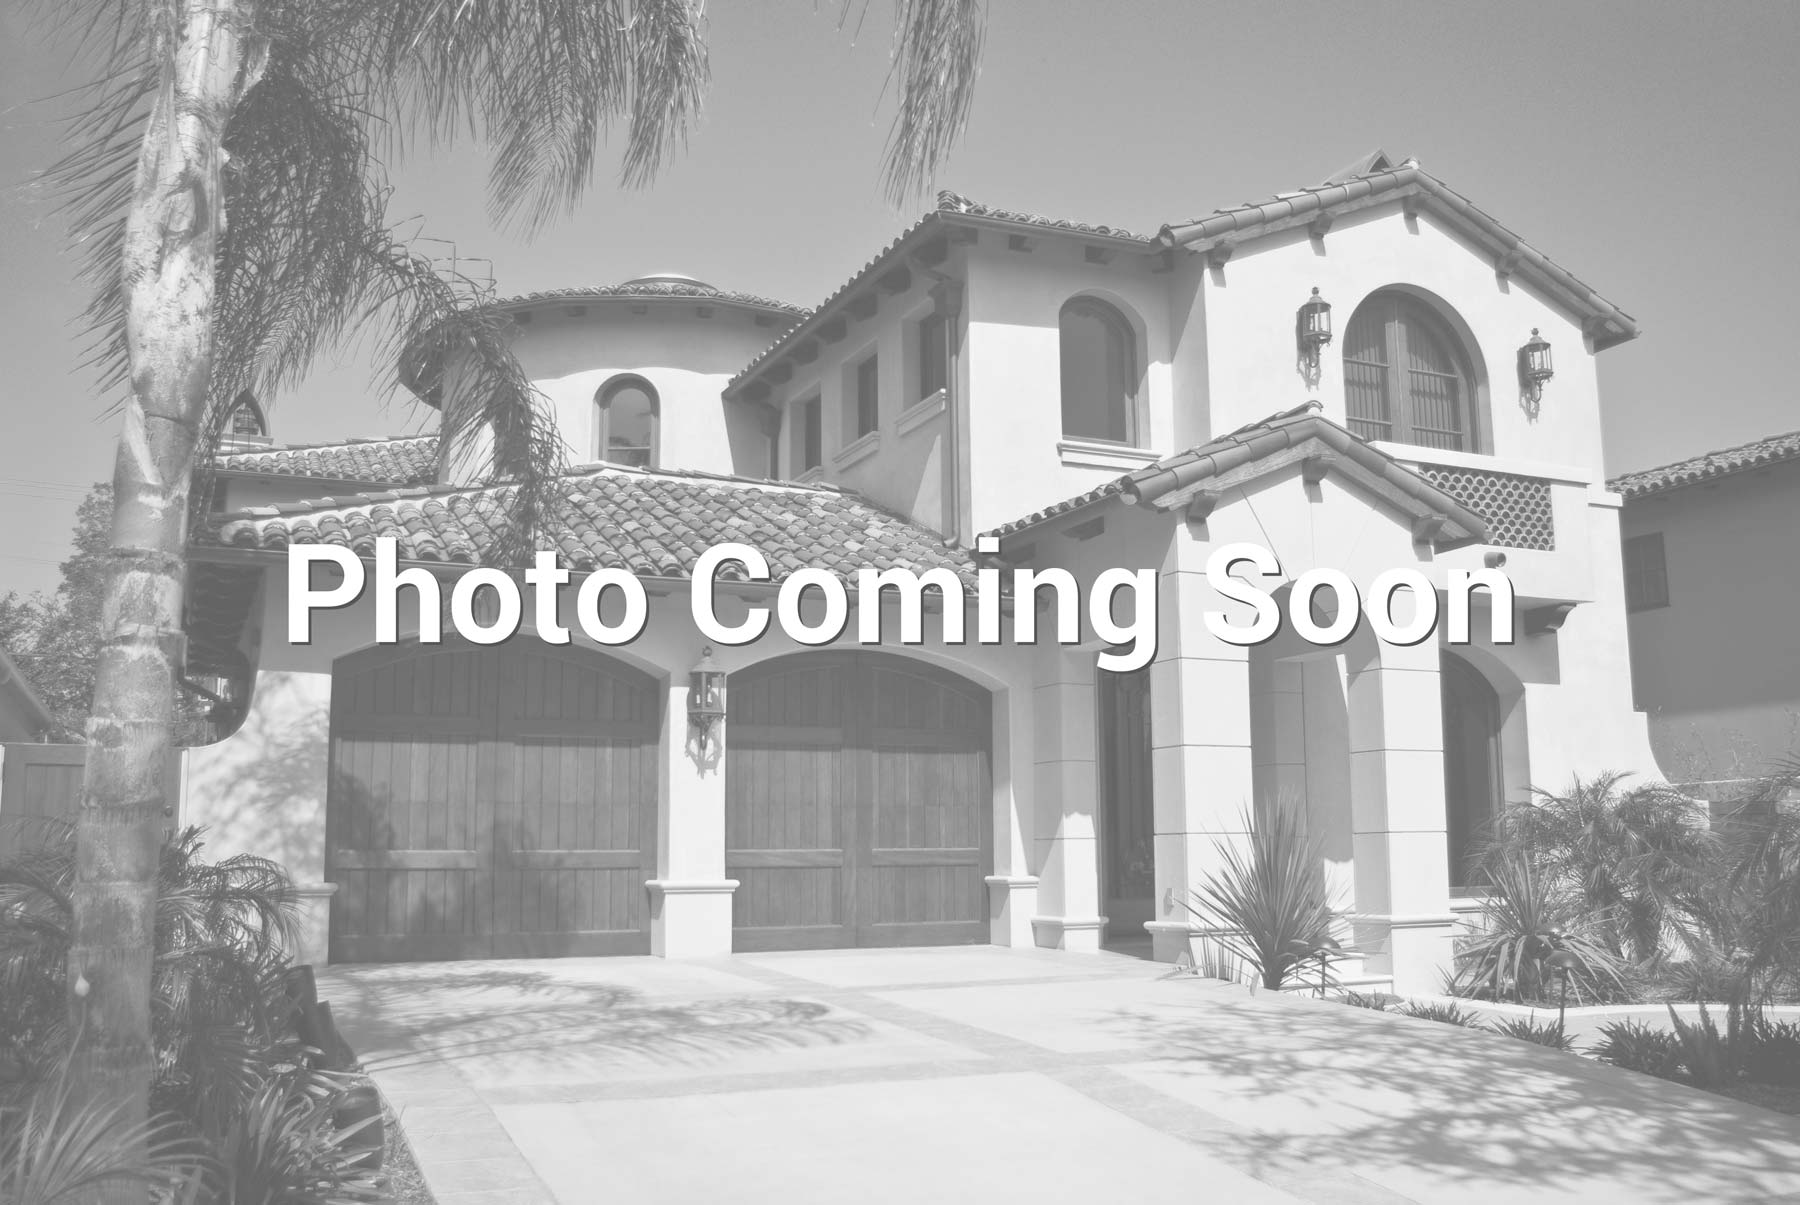 $3,200,000 - 4Br/5Ba - Home for Sale in The Boulders, Carefree